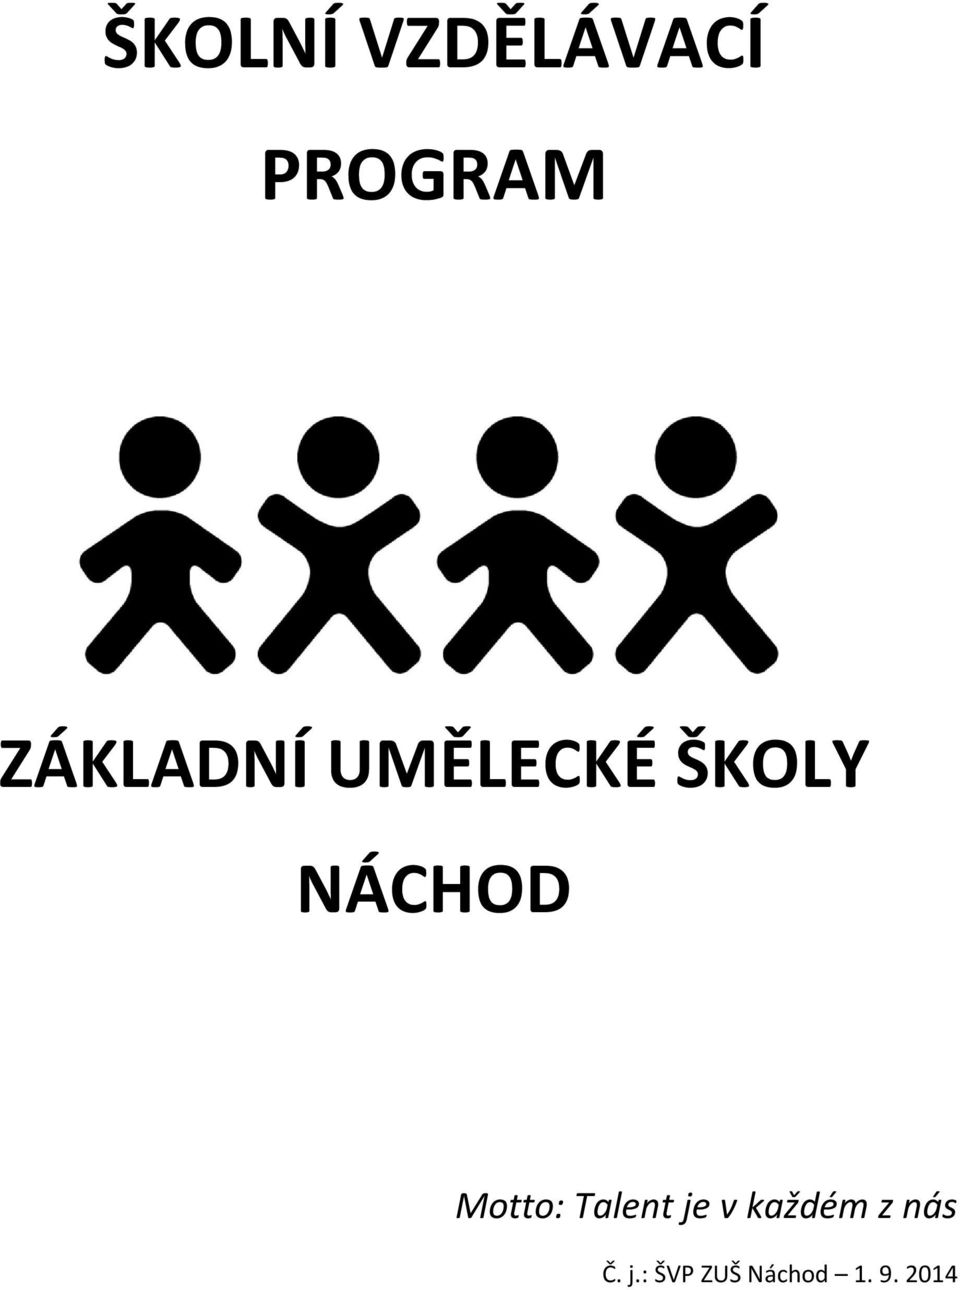 Motto: Talent je v každém z